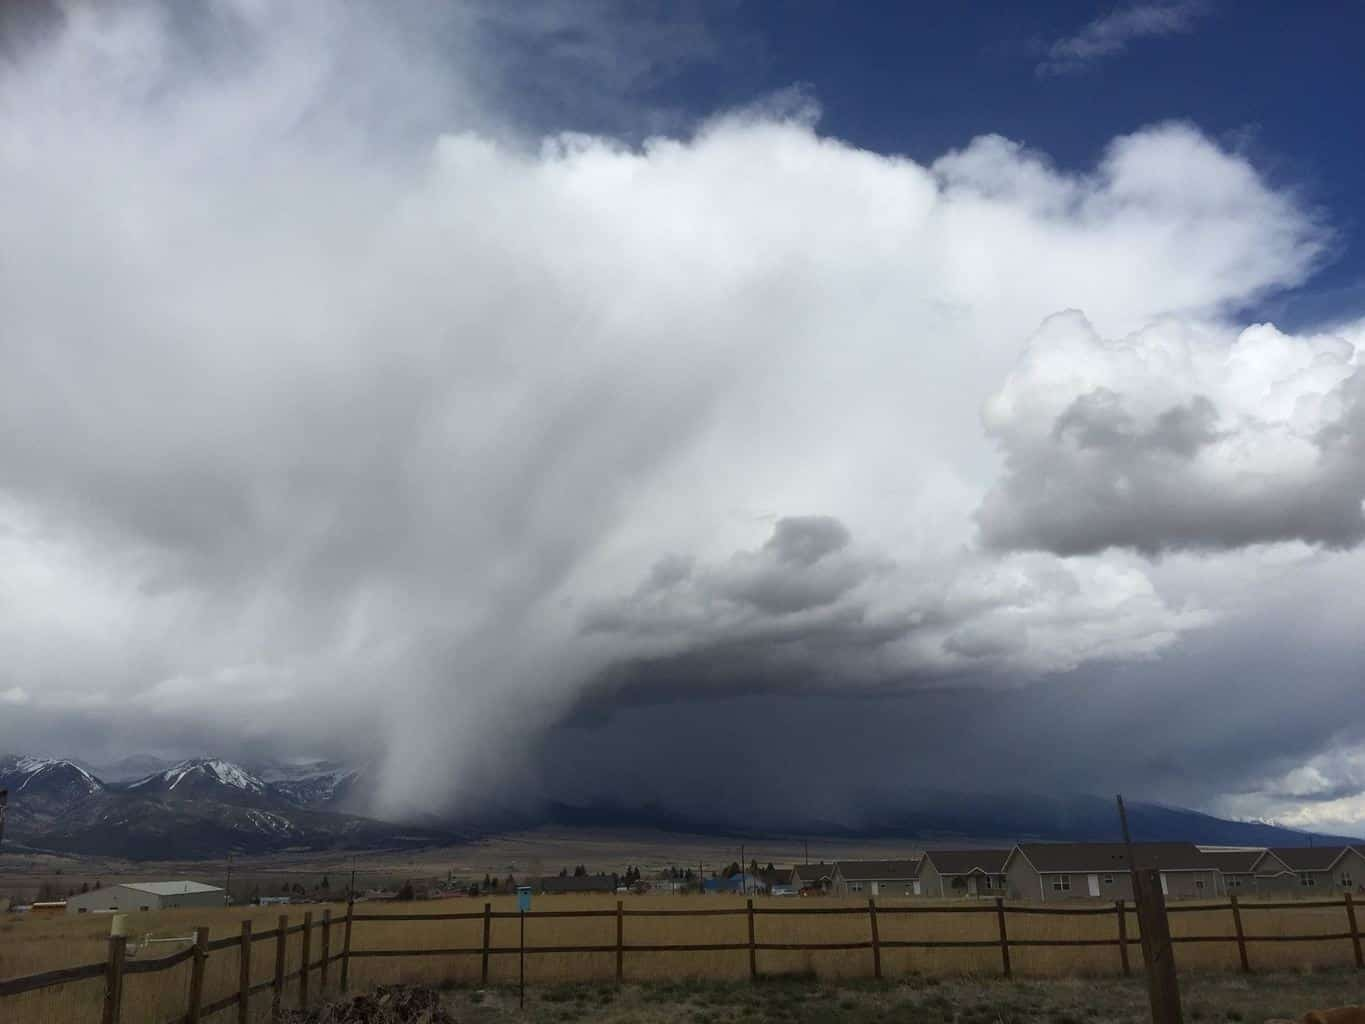 Cool shot of a downpour of probable snow/rain mix coming off the mountains this morning...Westcliffe, CO